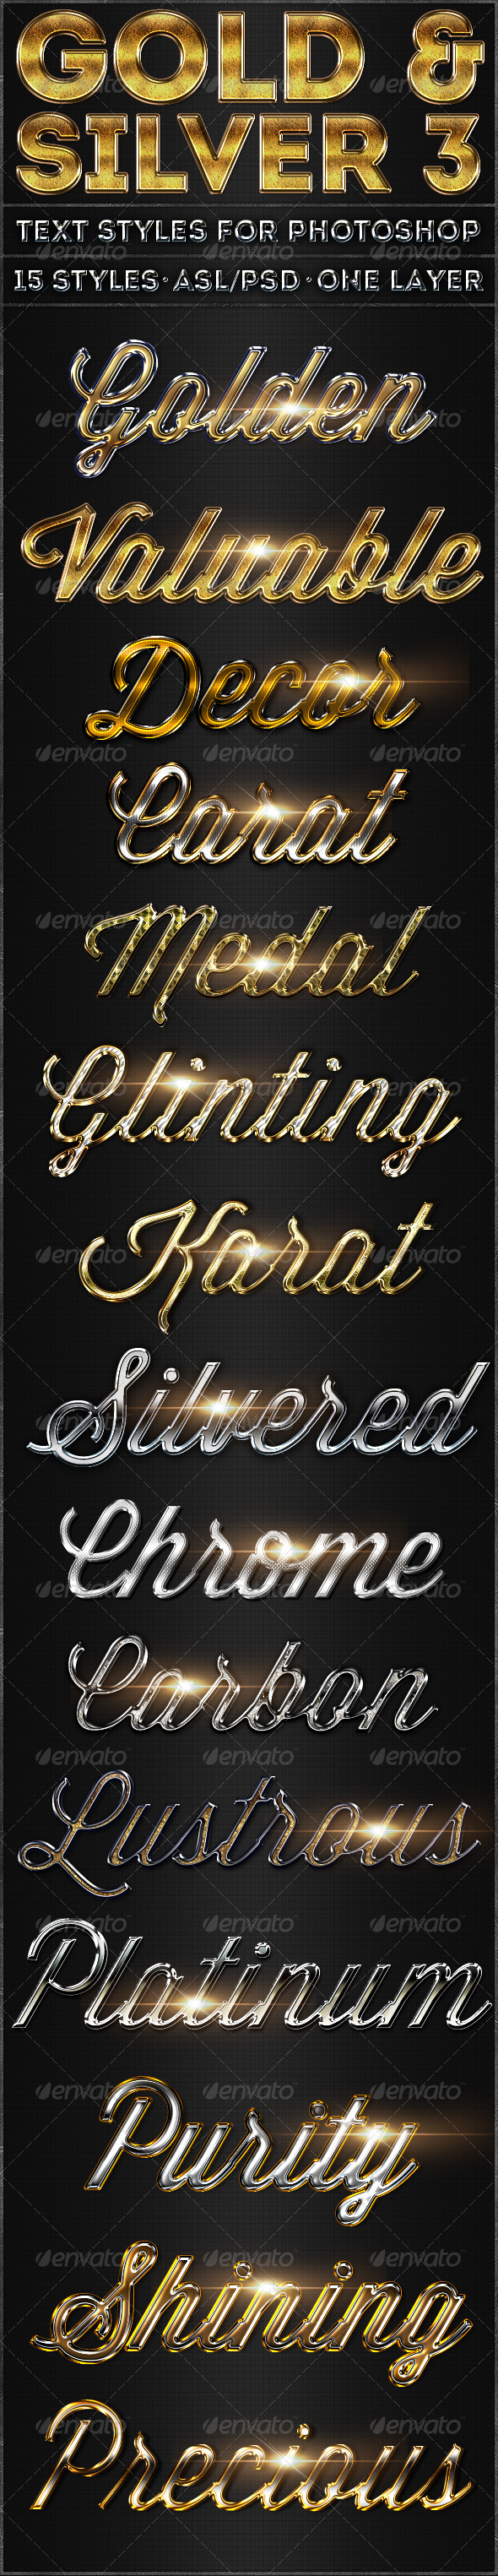 Gold & Silver 3 - Text Styles - Text Effects Styles